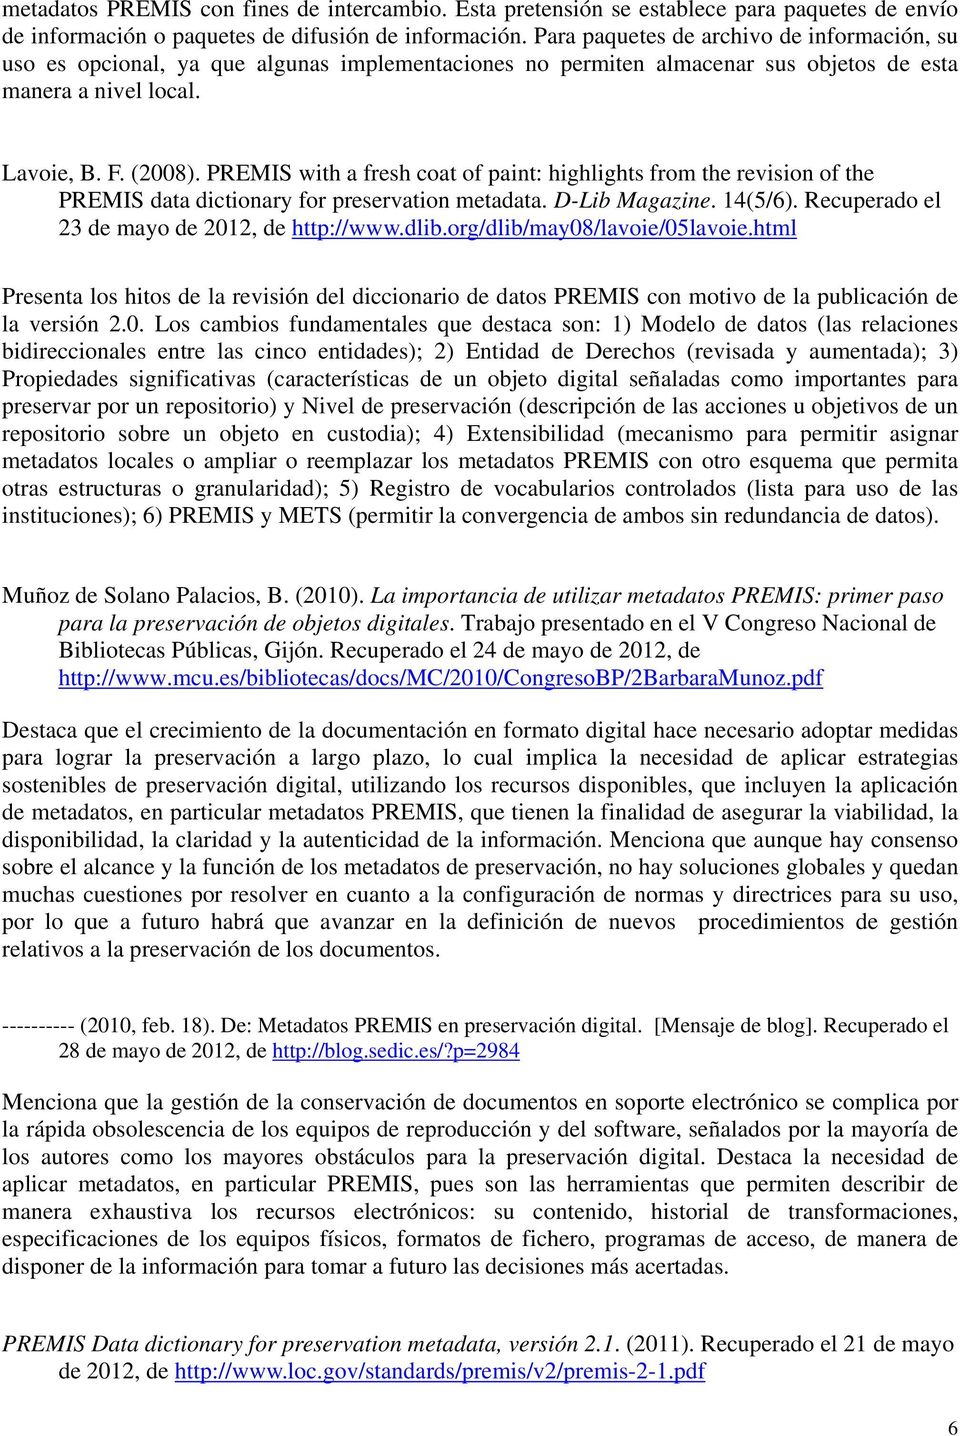 PREMIS with a fresh coat of paint: highlights from the revision of the PREMIS data dictionary for preservation metadata. D-Lib Magazine. 14(5/6). Recuperado el 23 de mayo de 2012, de http://www.dlib.